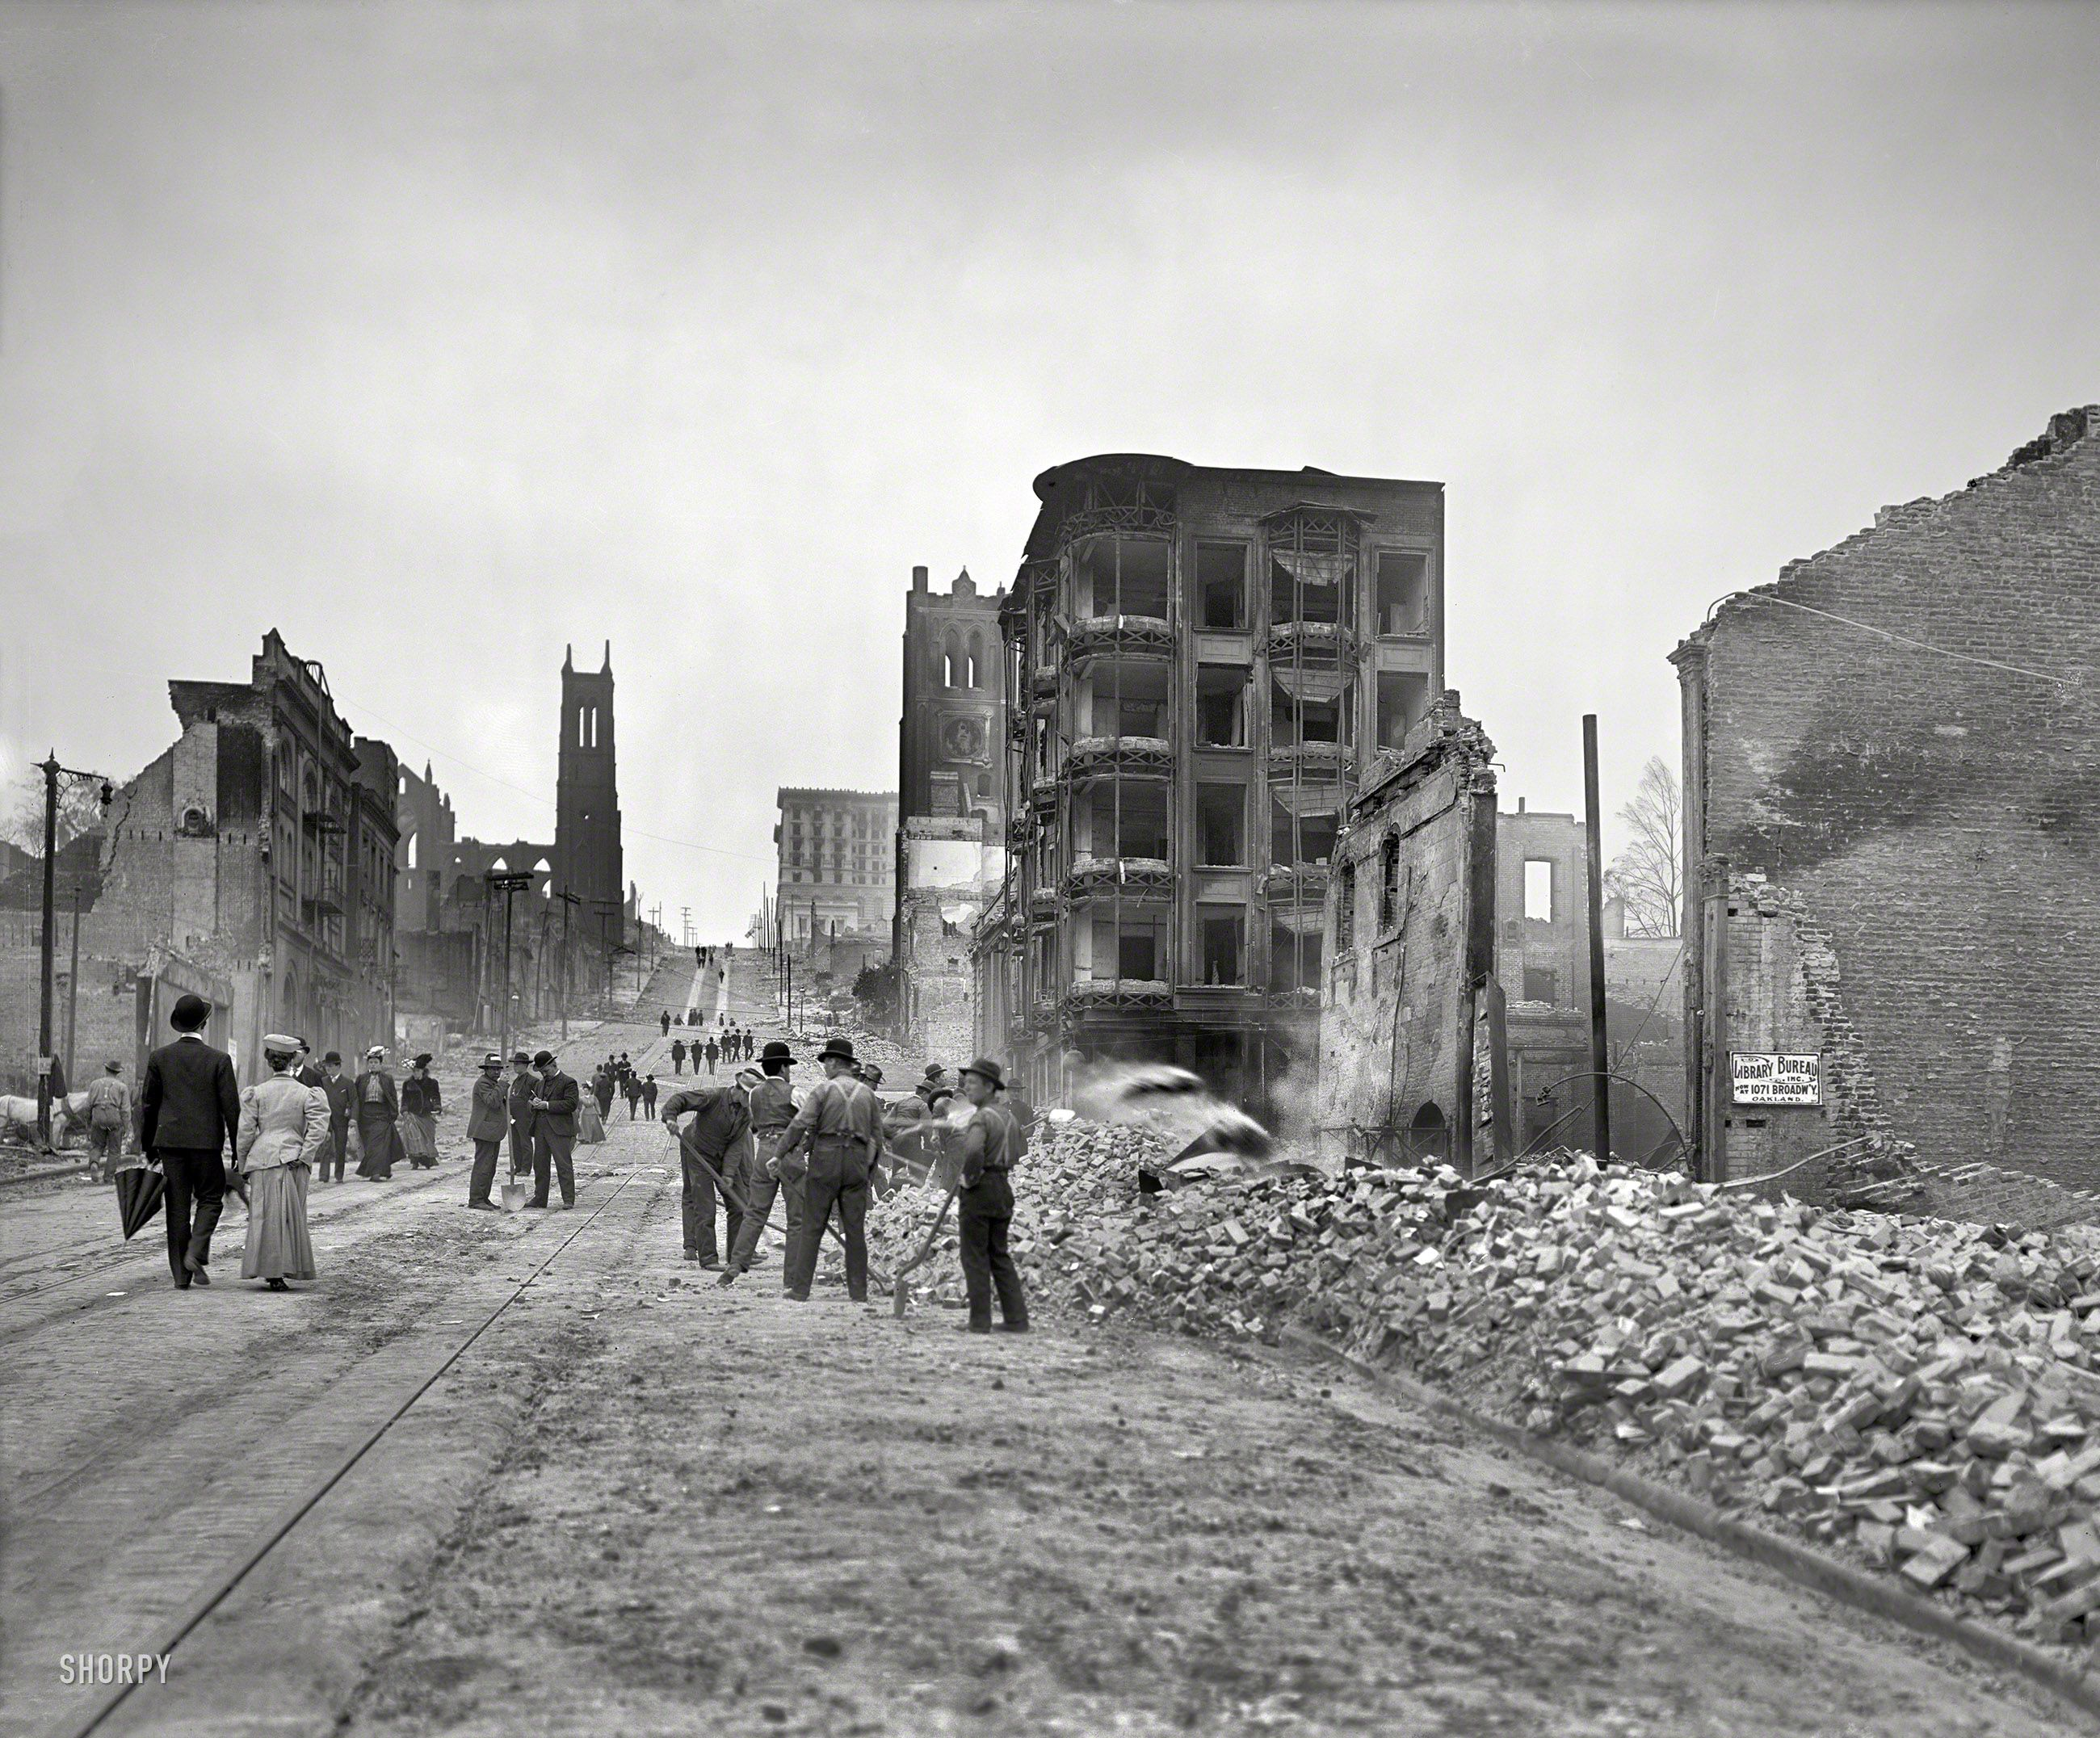 aftermath of the great san francisco earthquake and fire of april 18 1906 8x10 inch dry plate glass negative pinterest hist